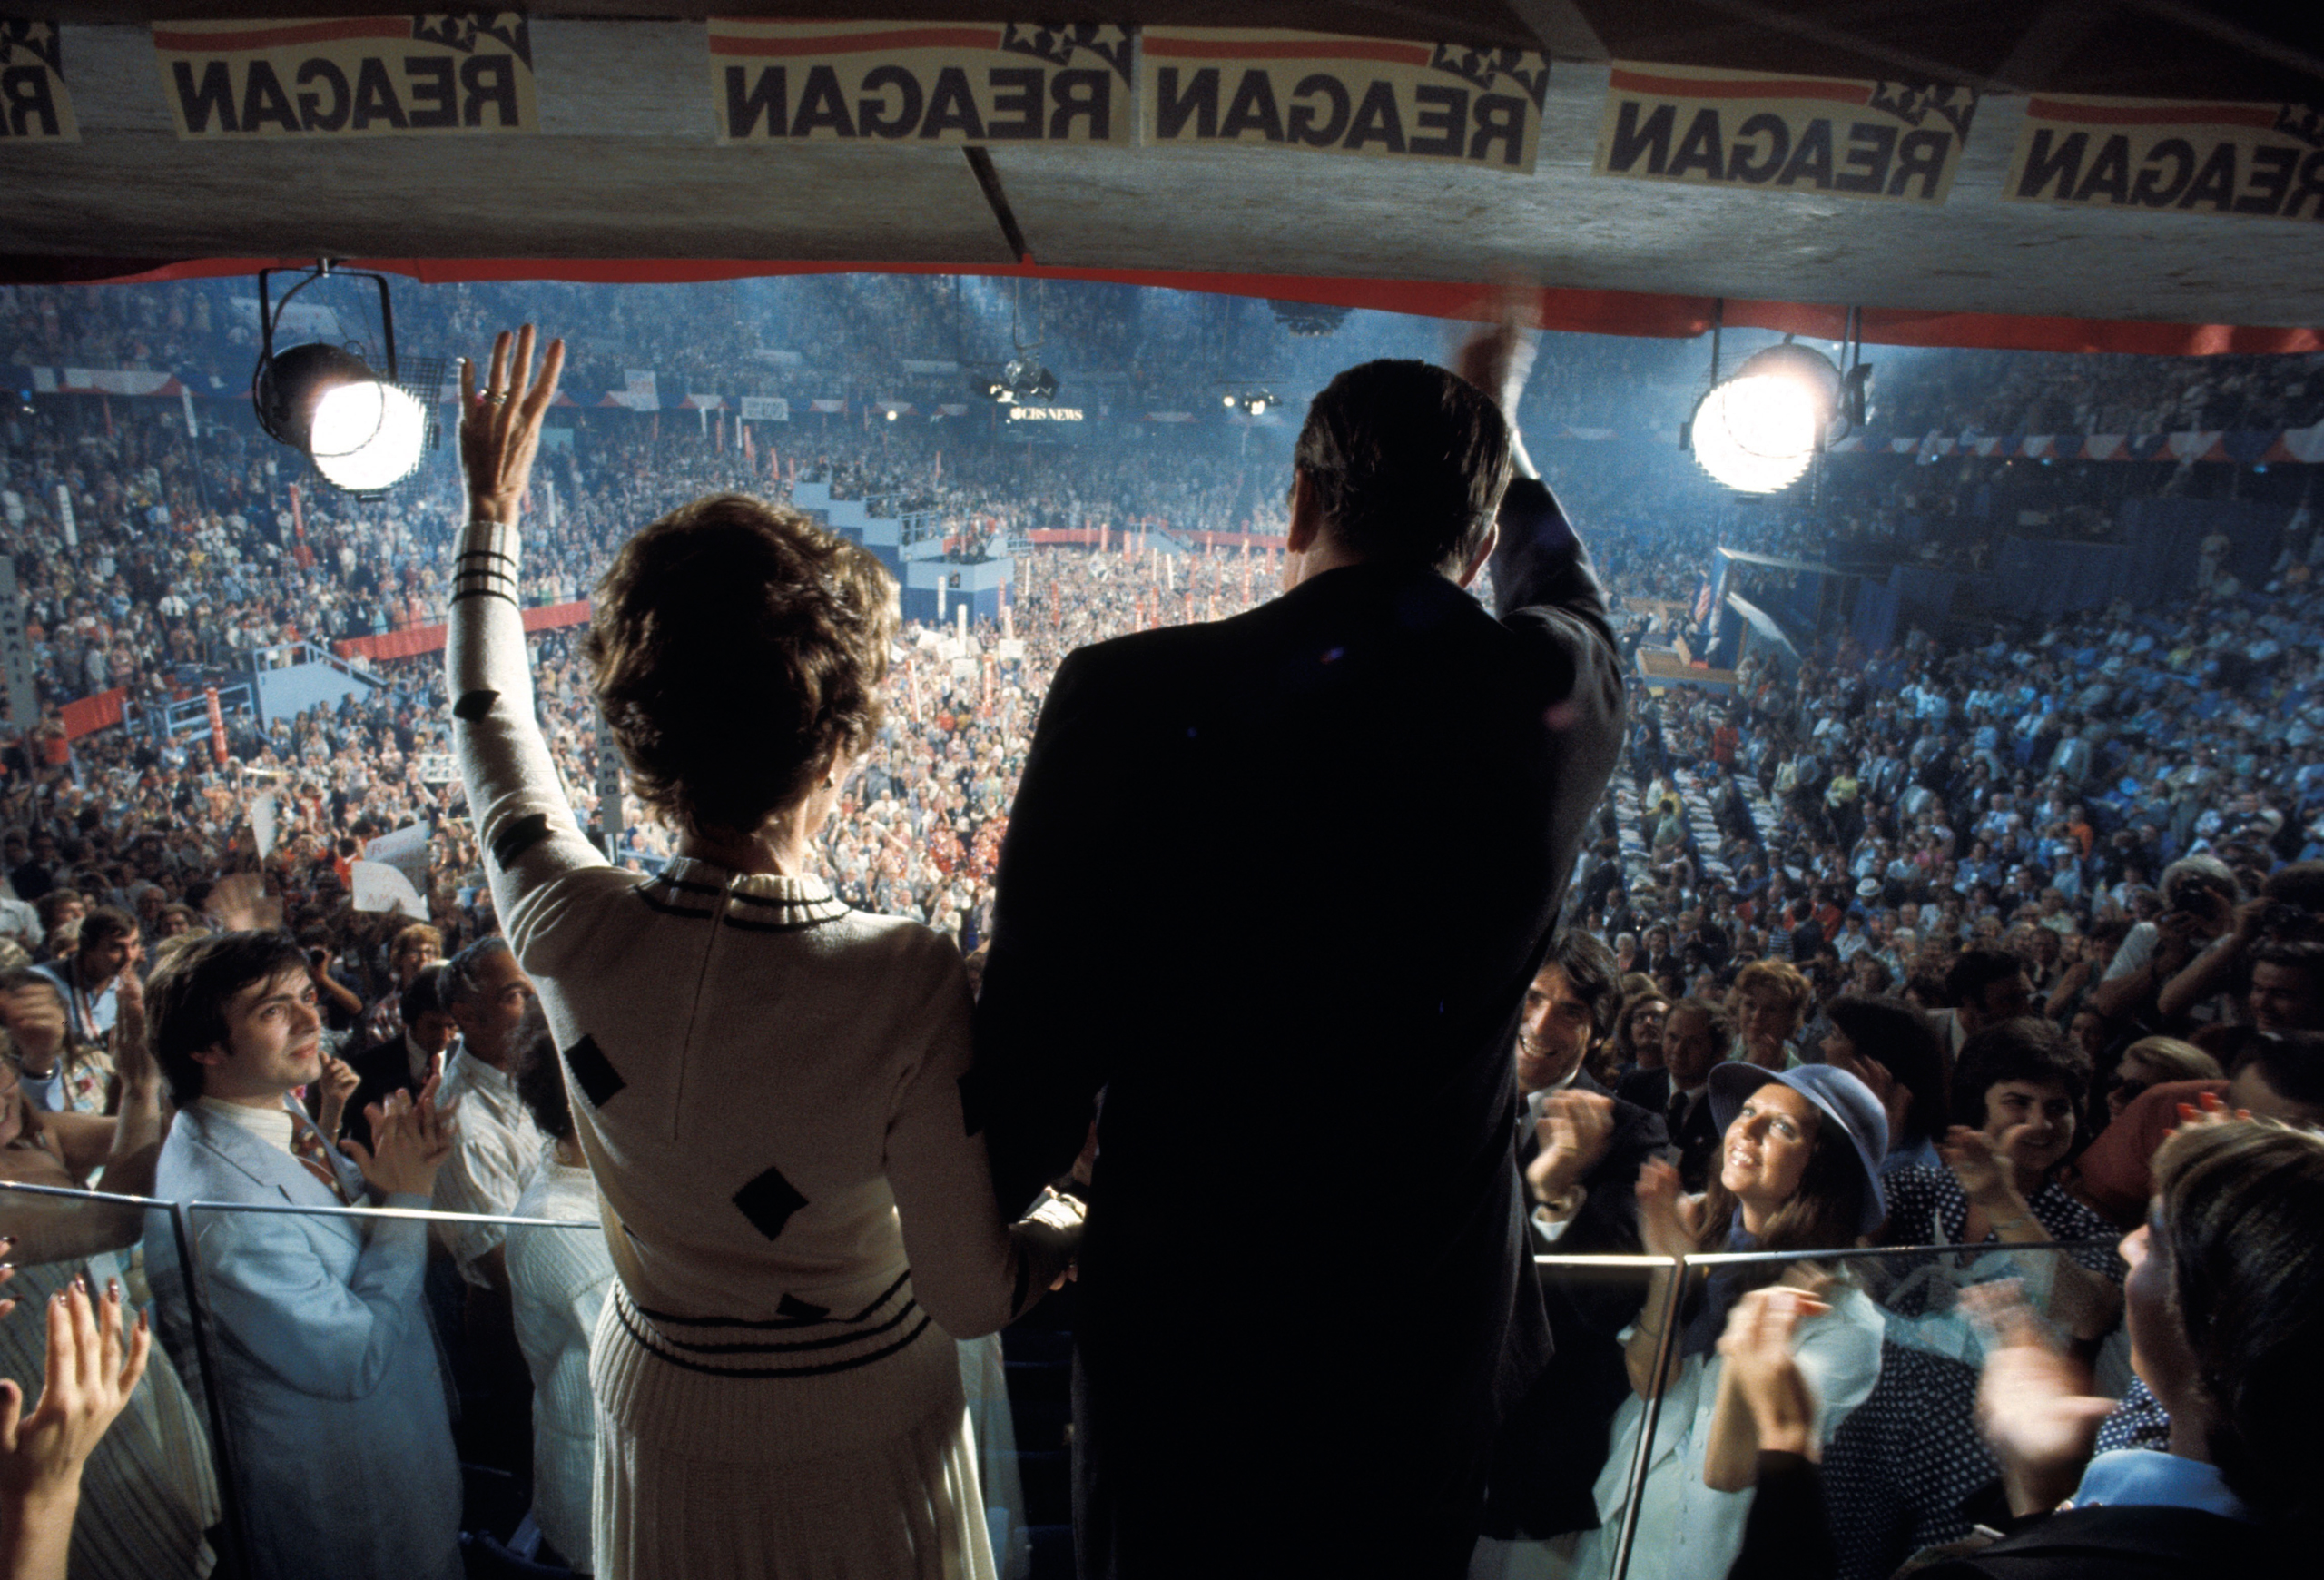 The Reagans wave to the crowd at the 1976 GOP Convention in Kansas City, where he narrowly lost the nomination to Ford